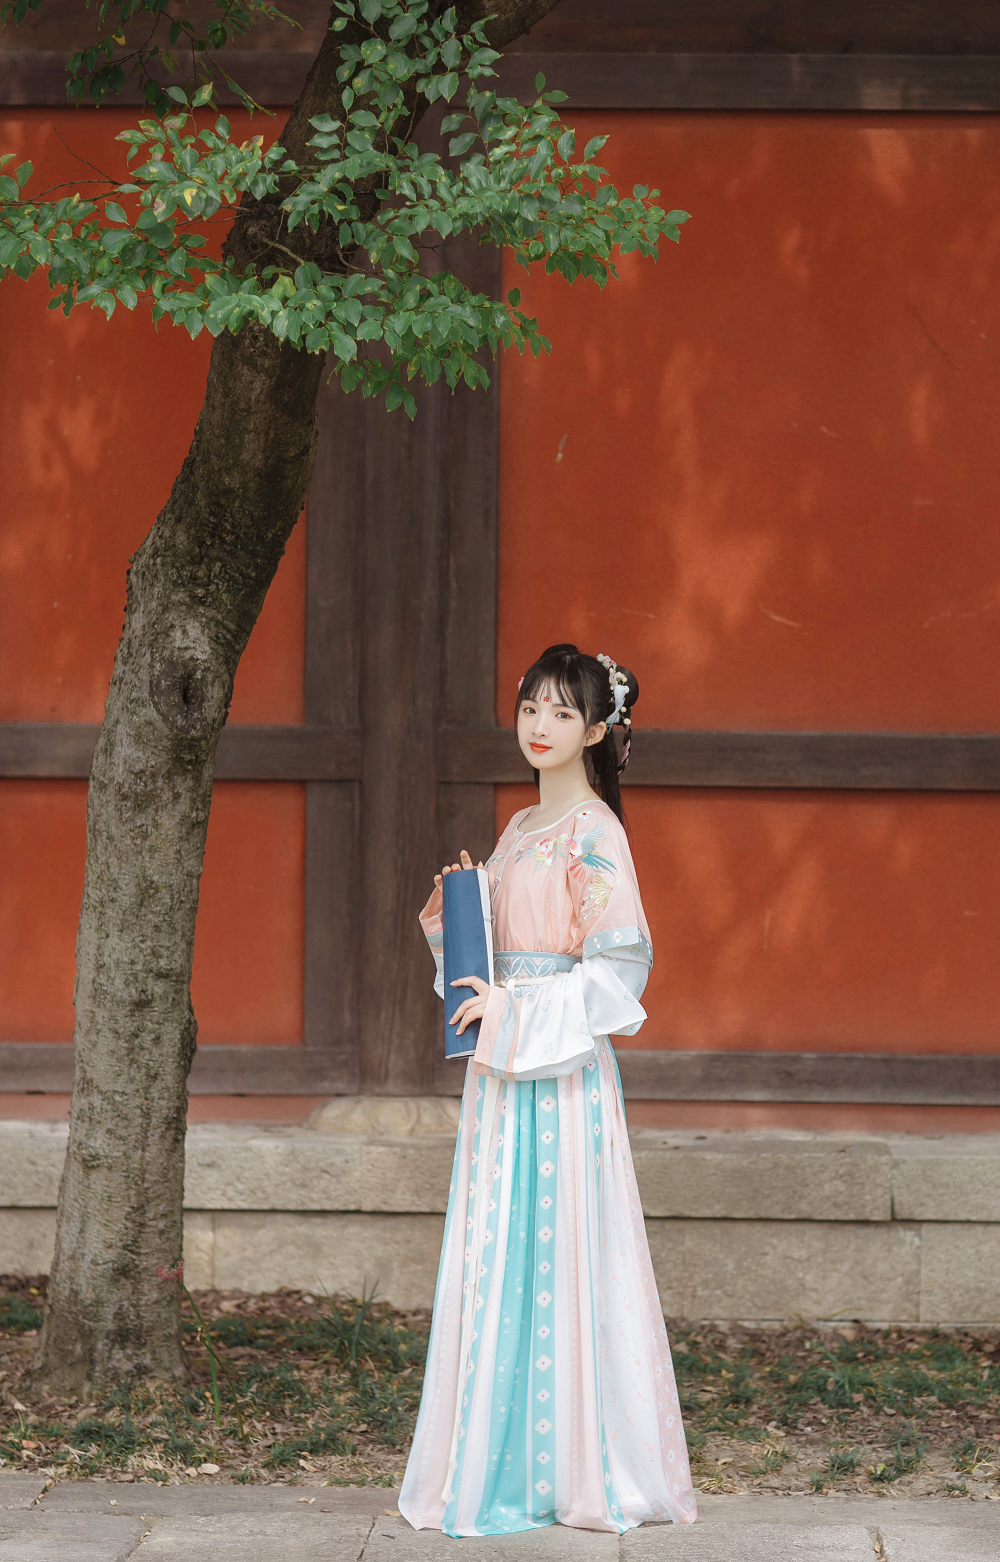 Handmade Embroidery Floral Women Hanfu Dress Cosplay Costume Vintage Stage Show Clothes 3 Pieces Set - WANER